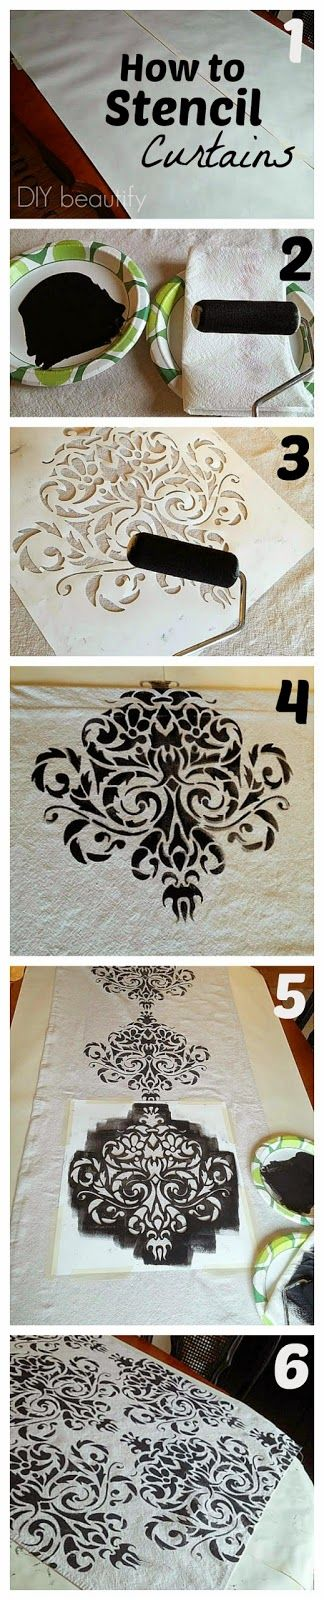 How to stencil curtains www.diybeautify.com